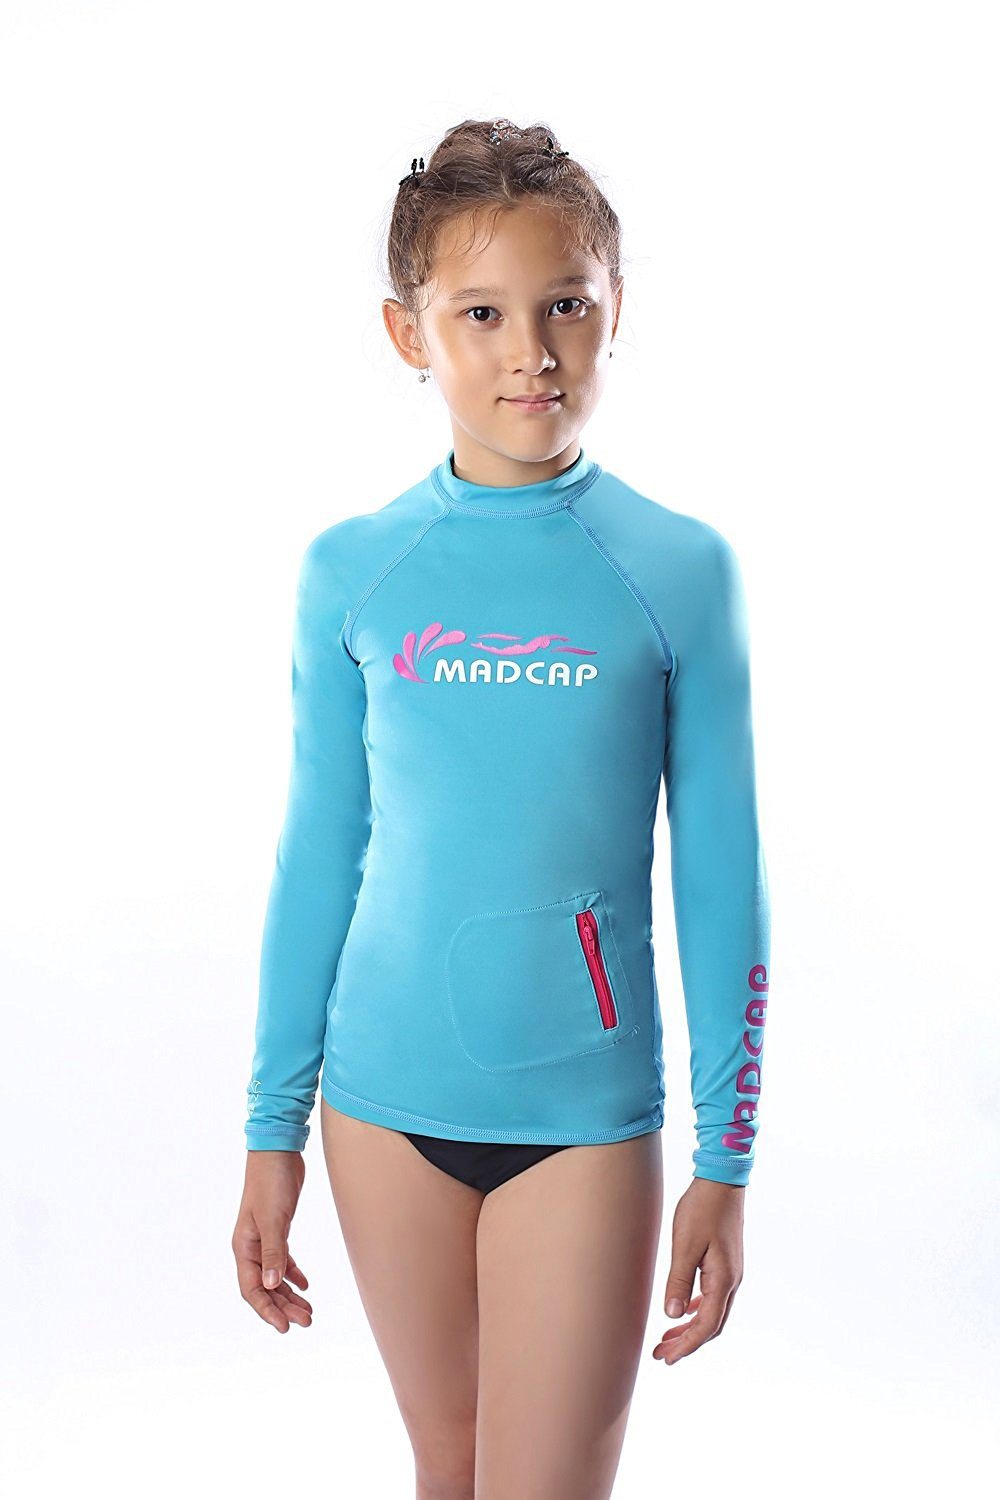 Vivafun Baby Girl Sun Protective Swimwear Rash Guard Shirt